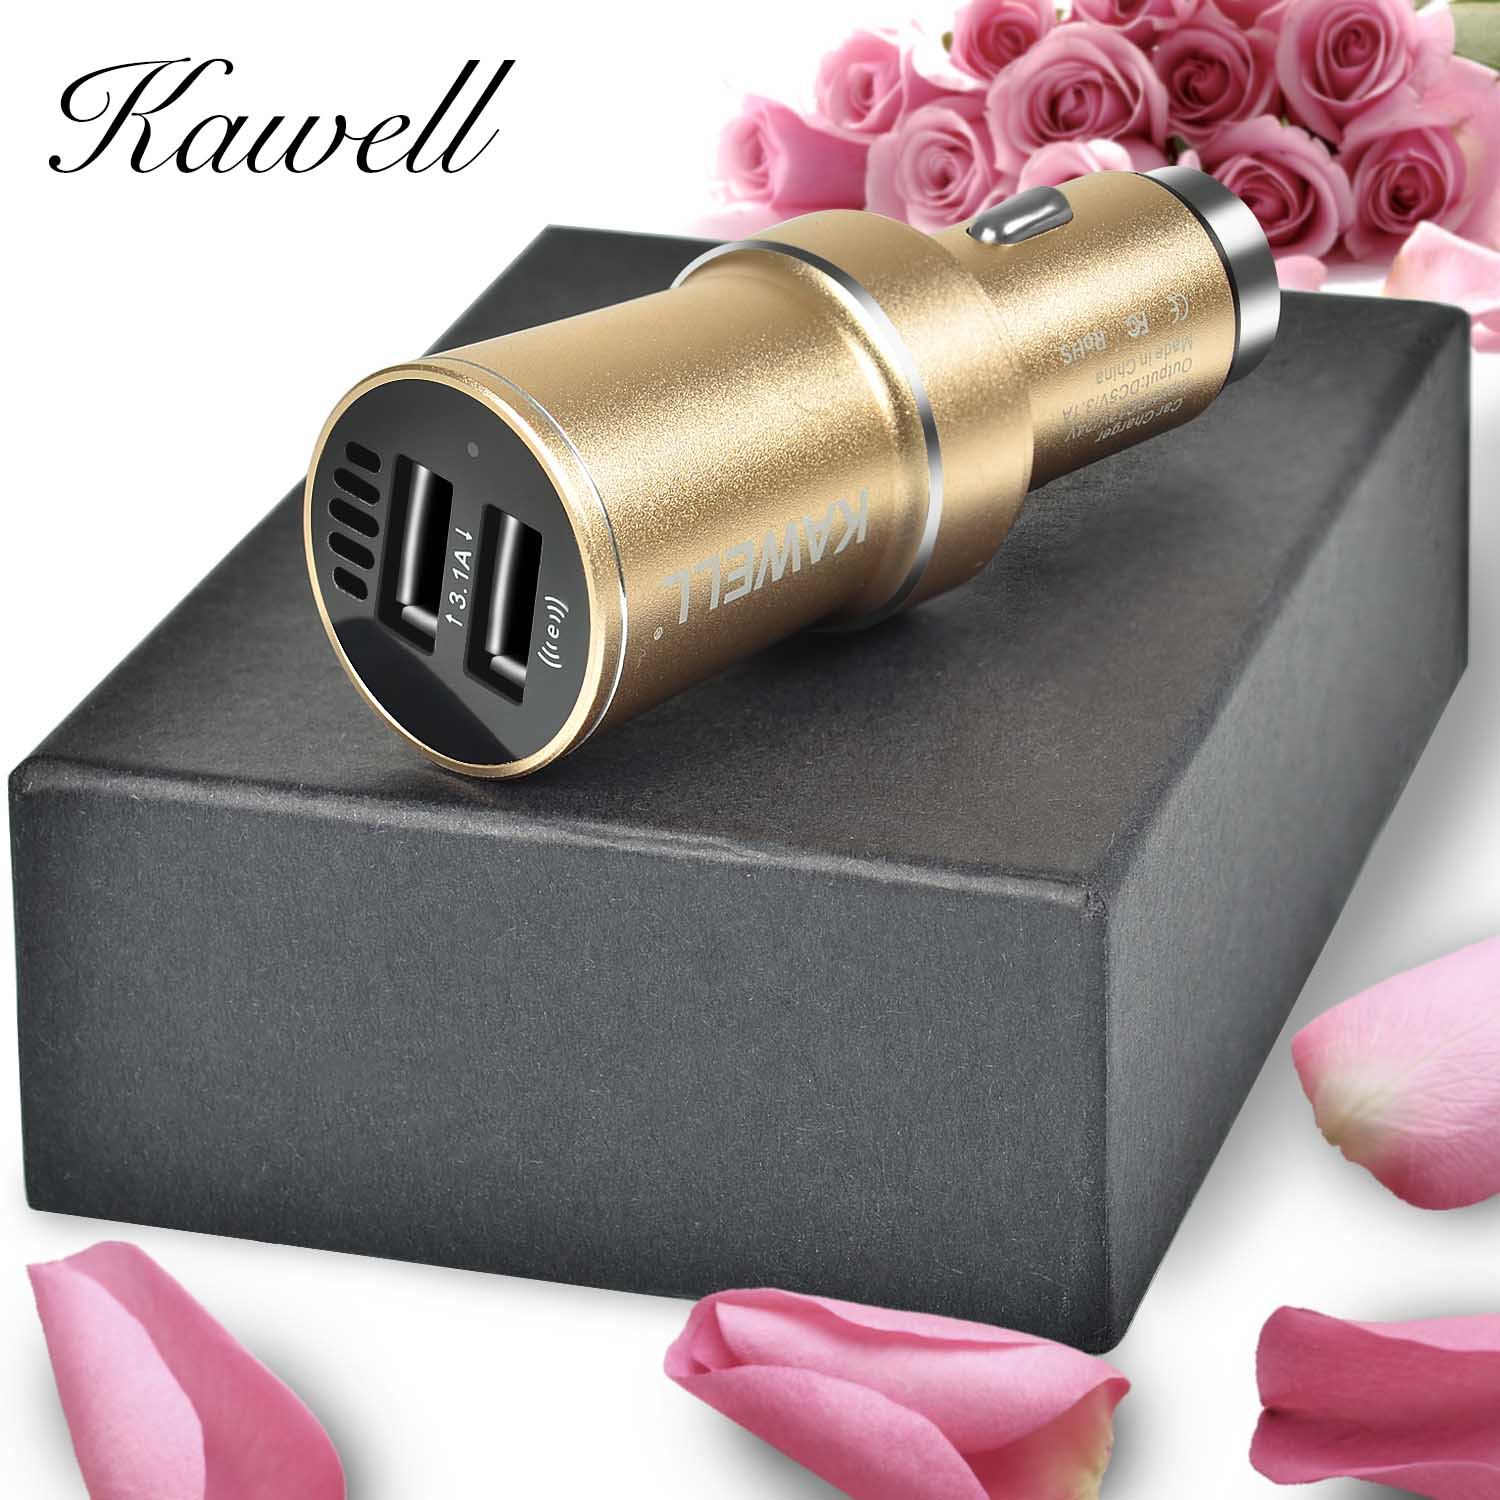 KAWELL Car Charger Cigarette Charger multi-function Dual Port USB with Air purification and Emergency harmmer function (Rose Gold)